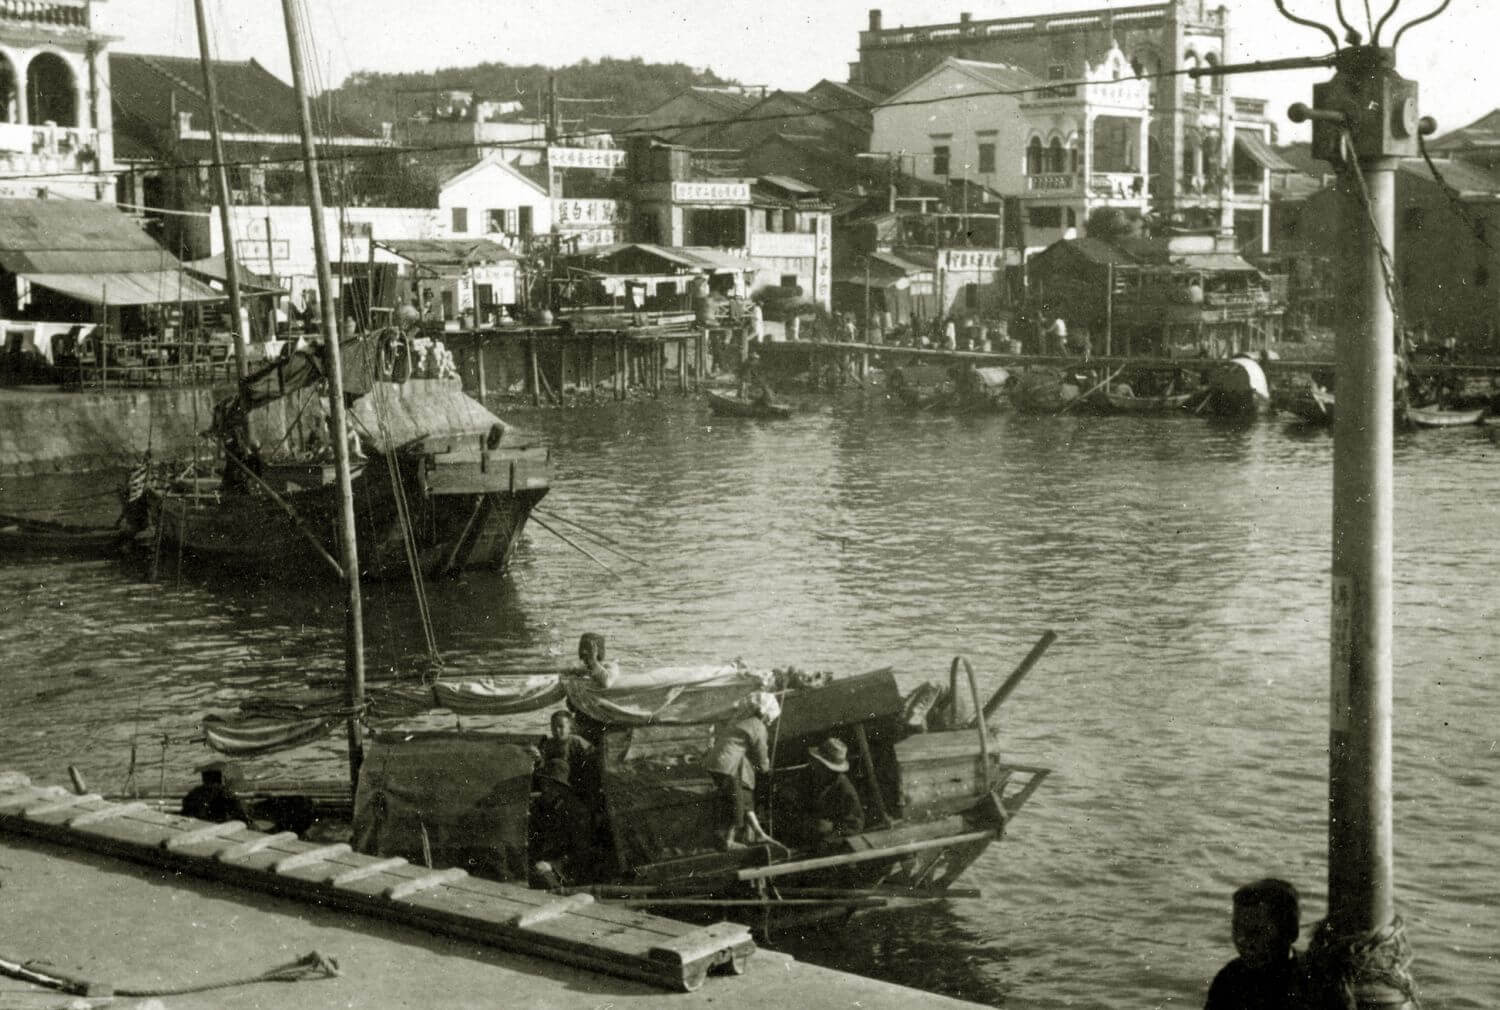 Cheung Chau 1930s - harbour and lighting